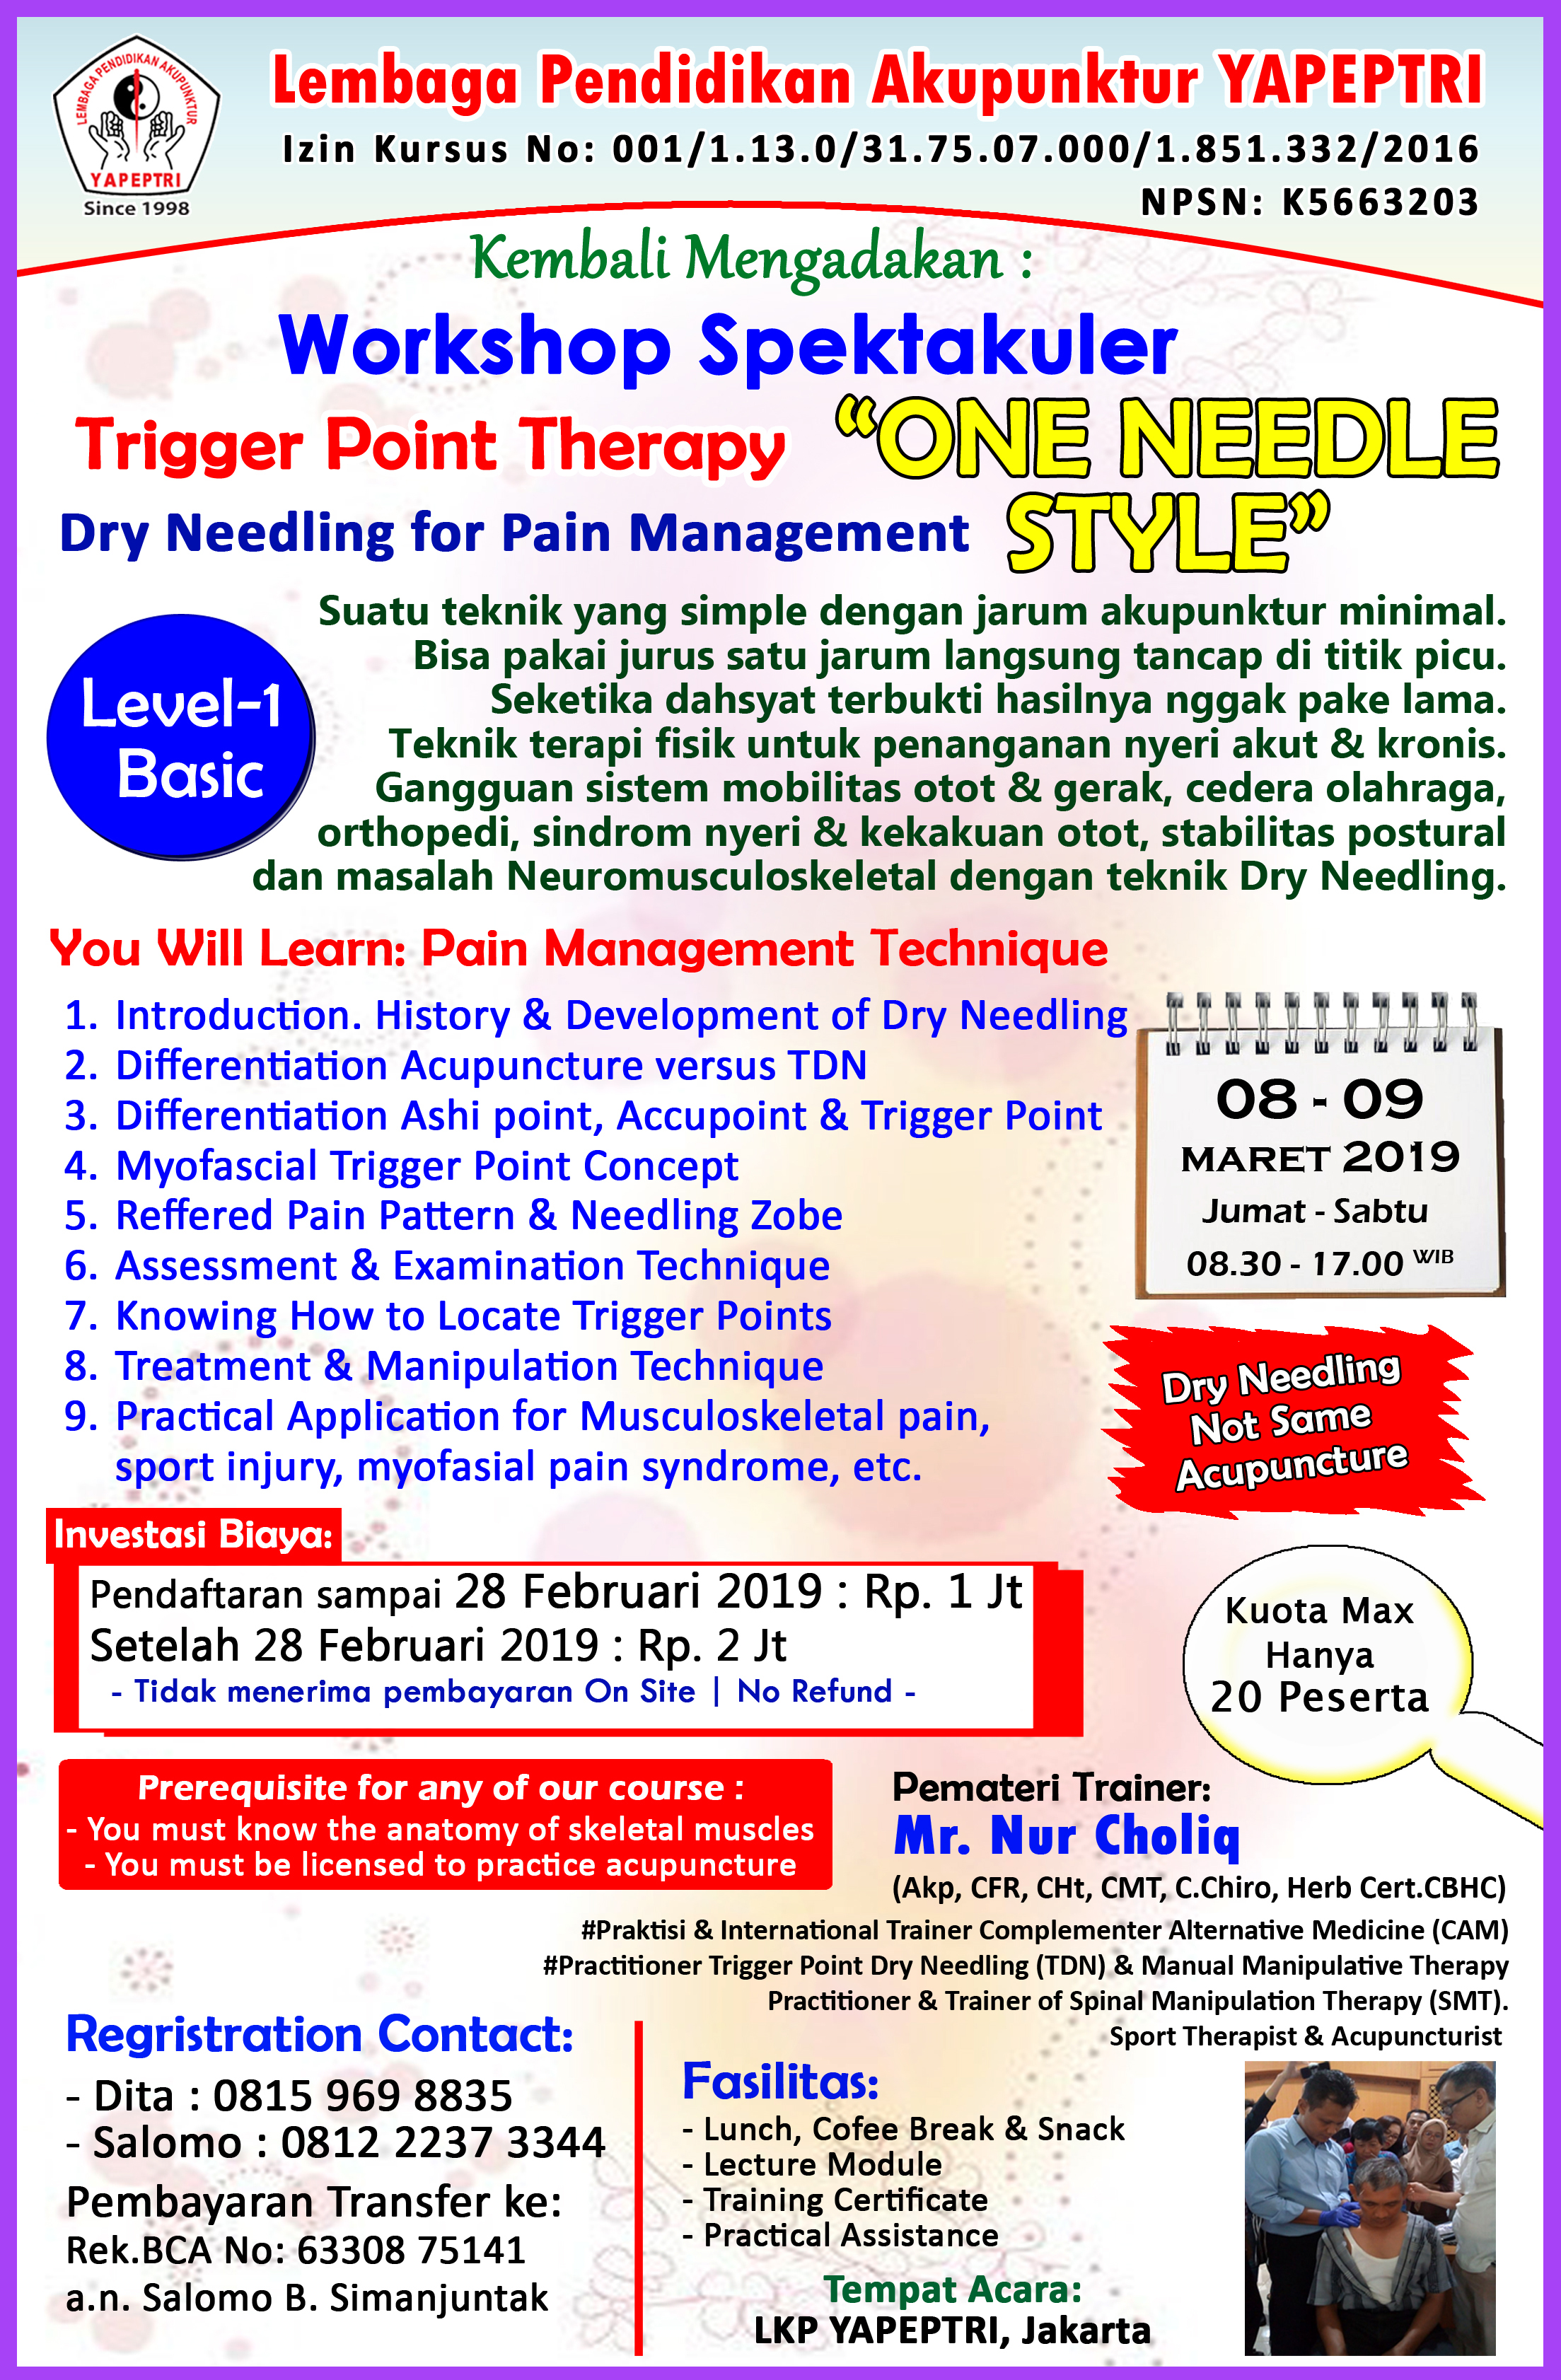 """Seminar dan Workshop Trigger Point Therapy """"ONE NEEDLE STYLE"""""""